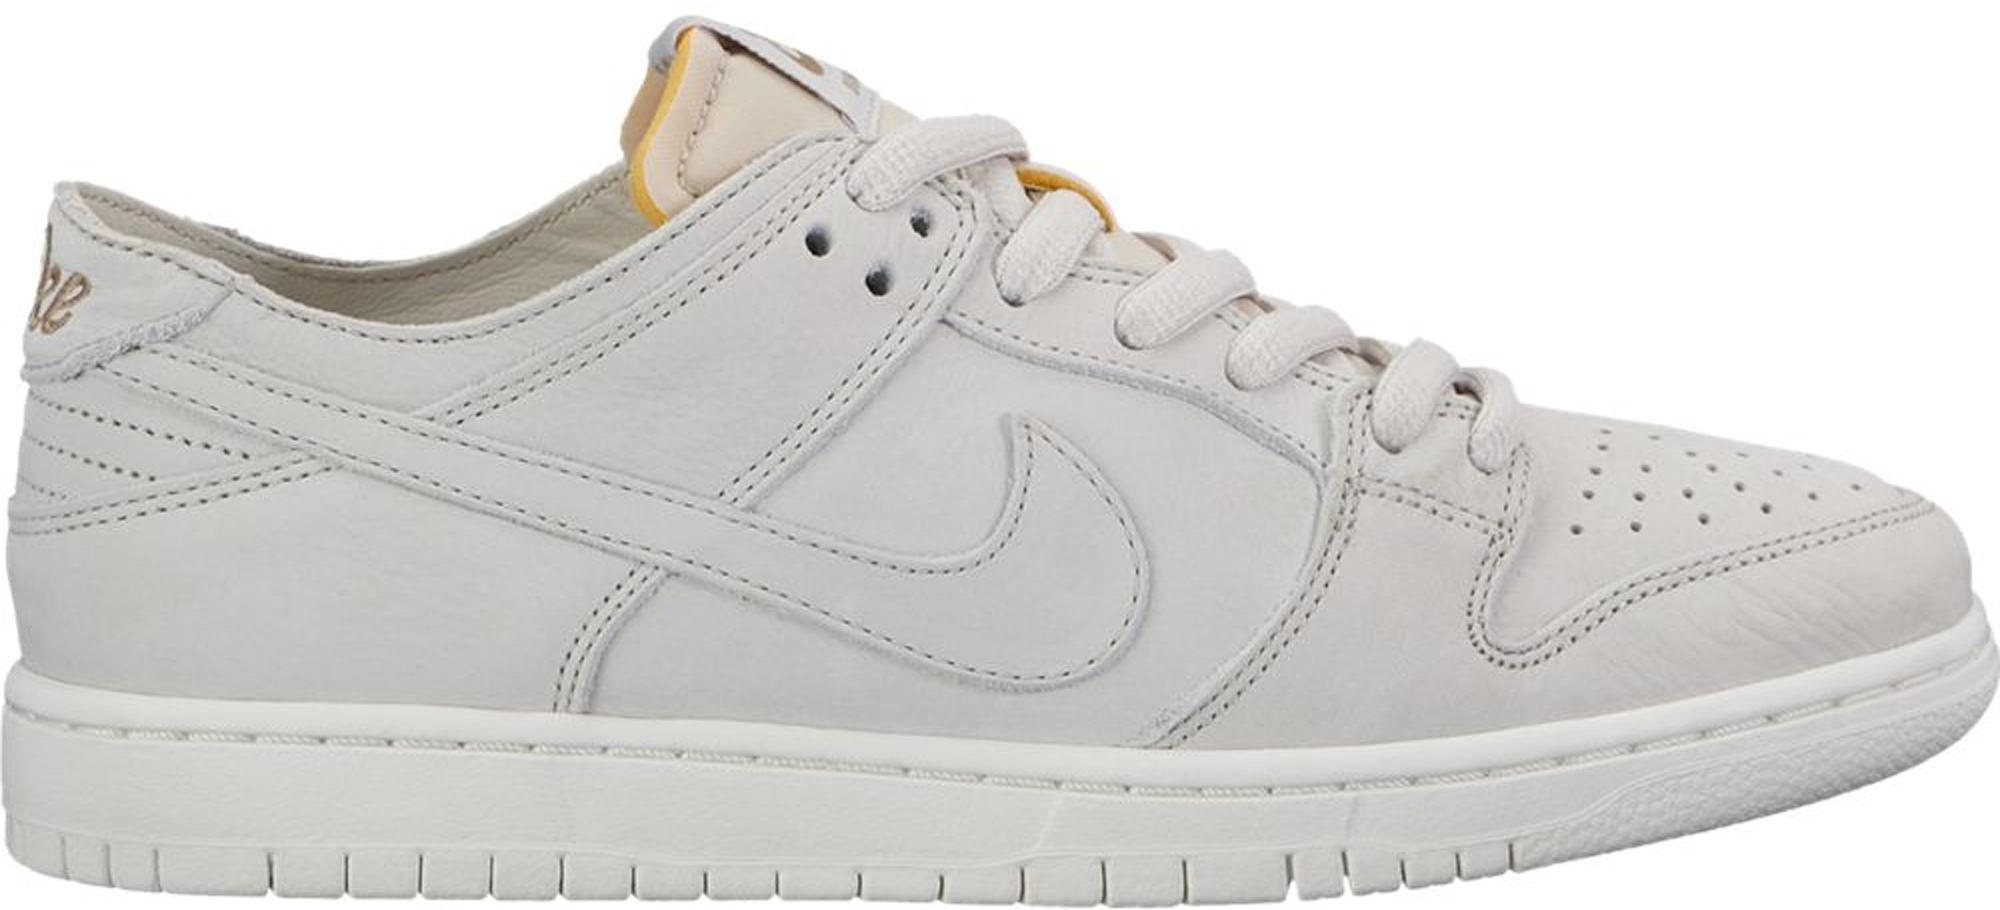 Nike SB Dunk Low Decon Light Bone